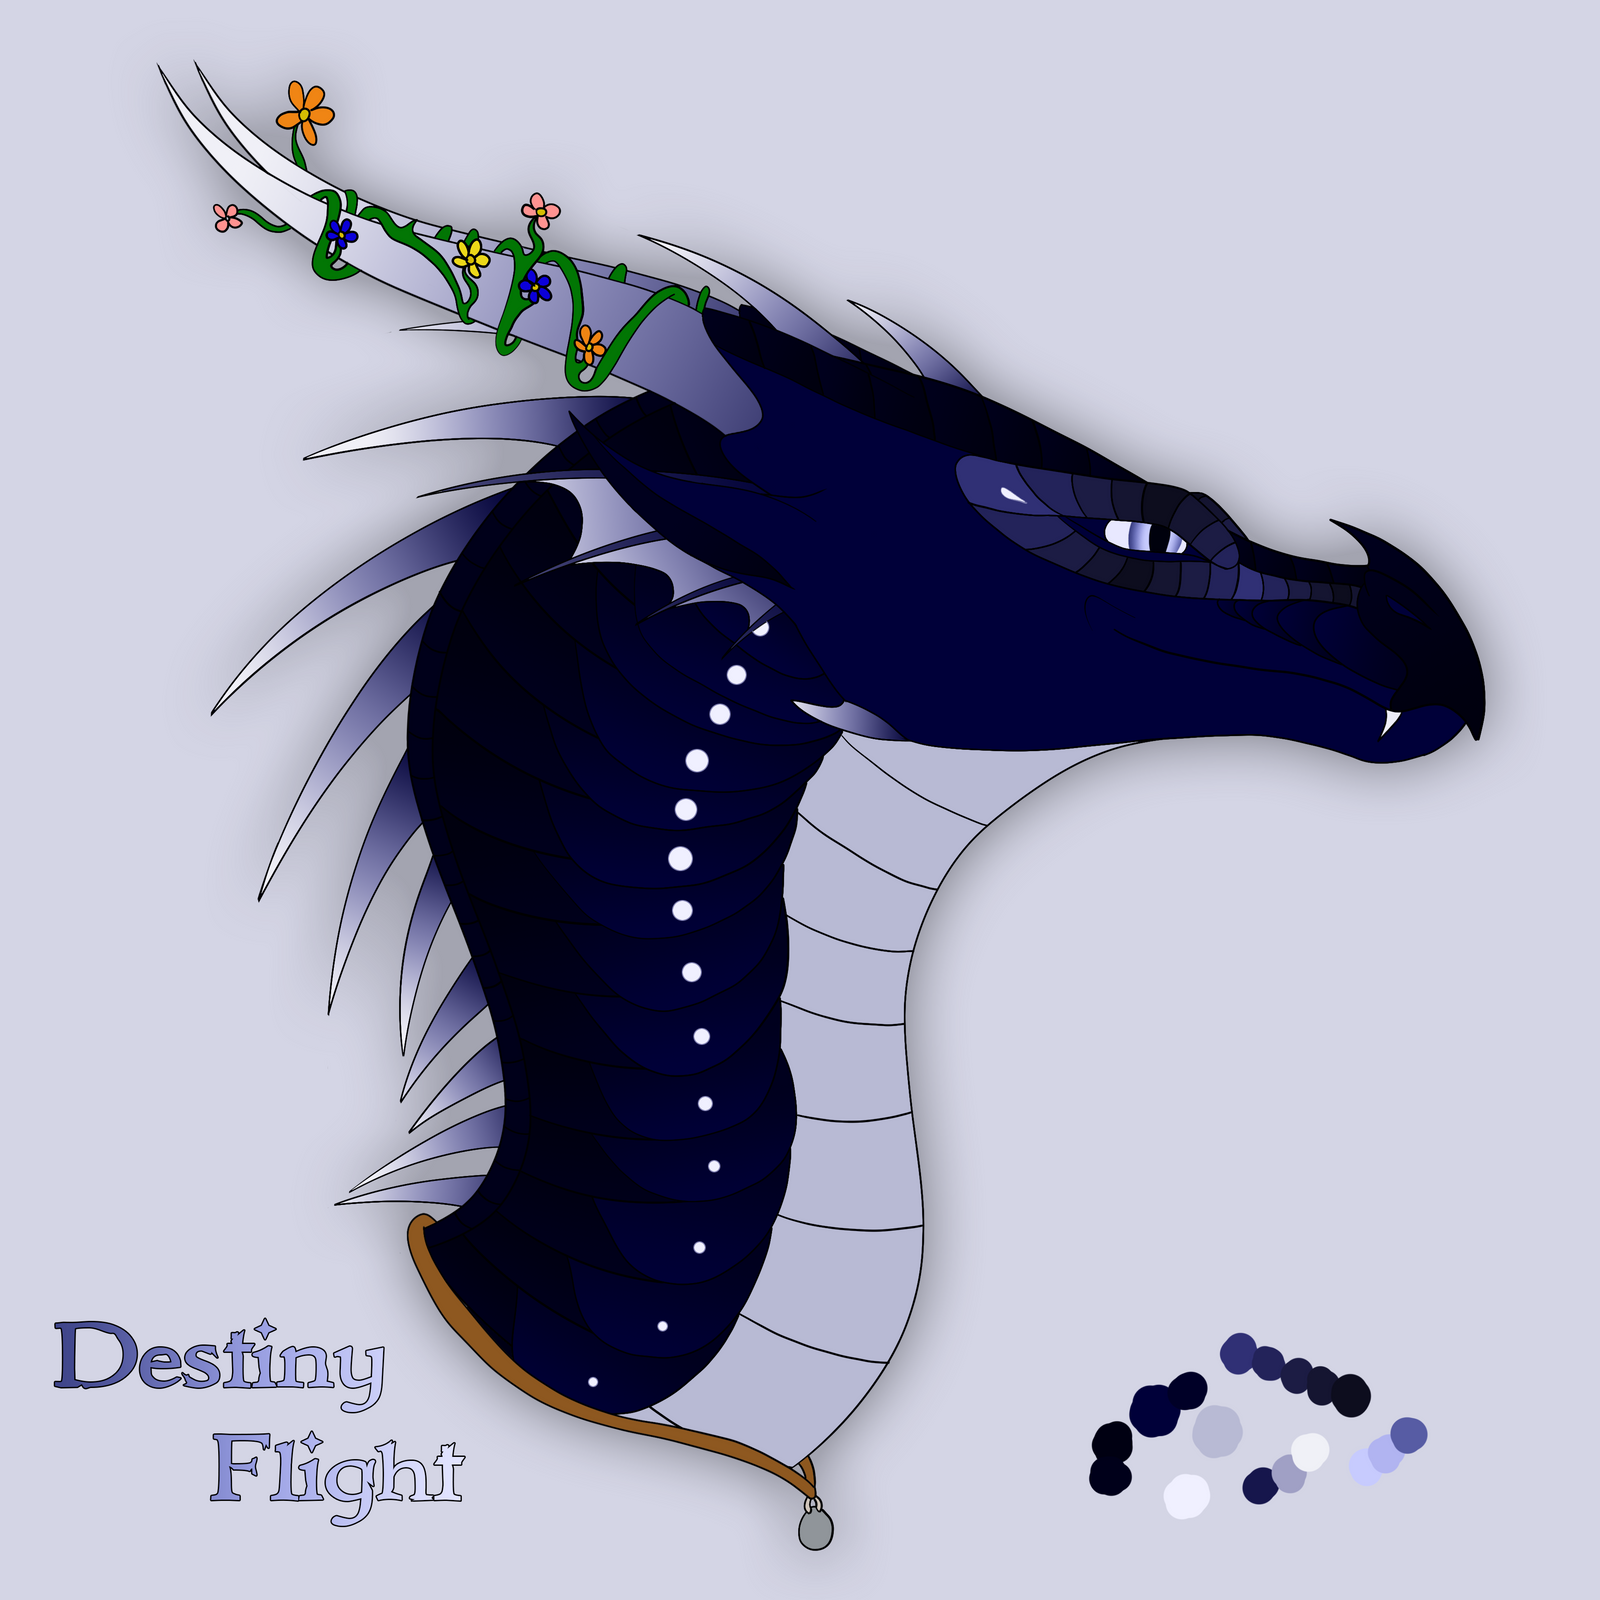 Destiny Flight by xTheDragonRebornx